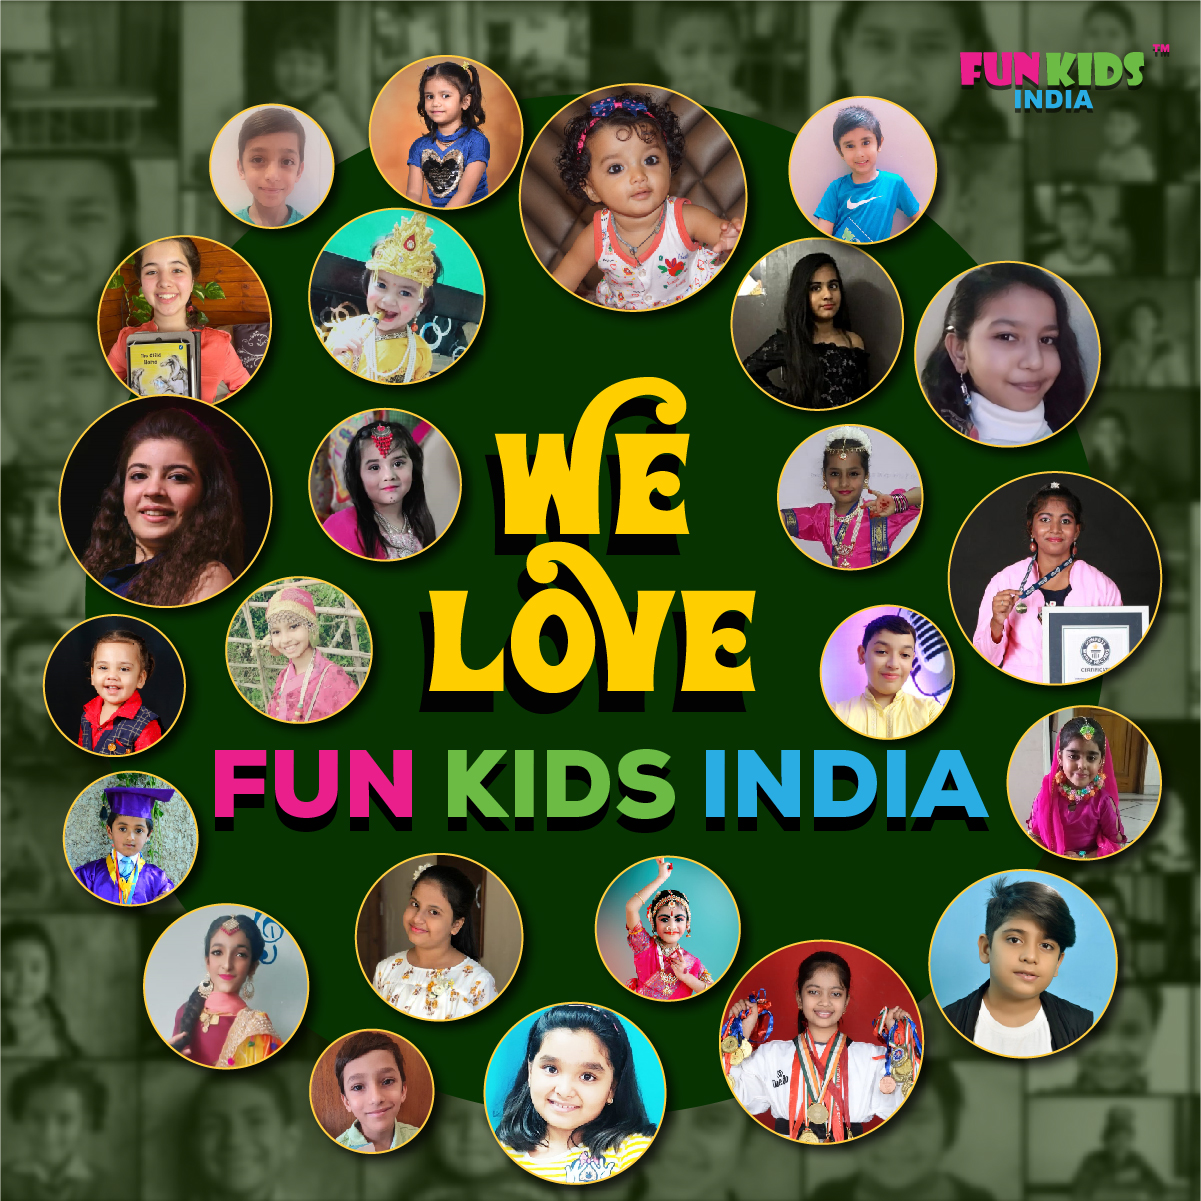 funkidsindia review and feedback